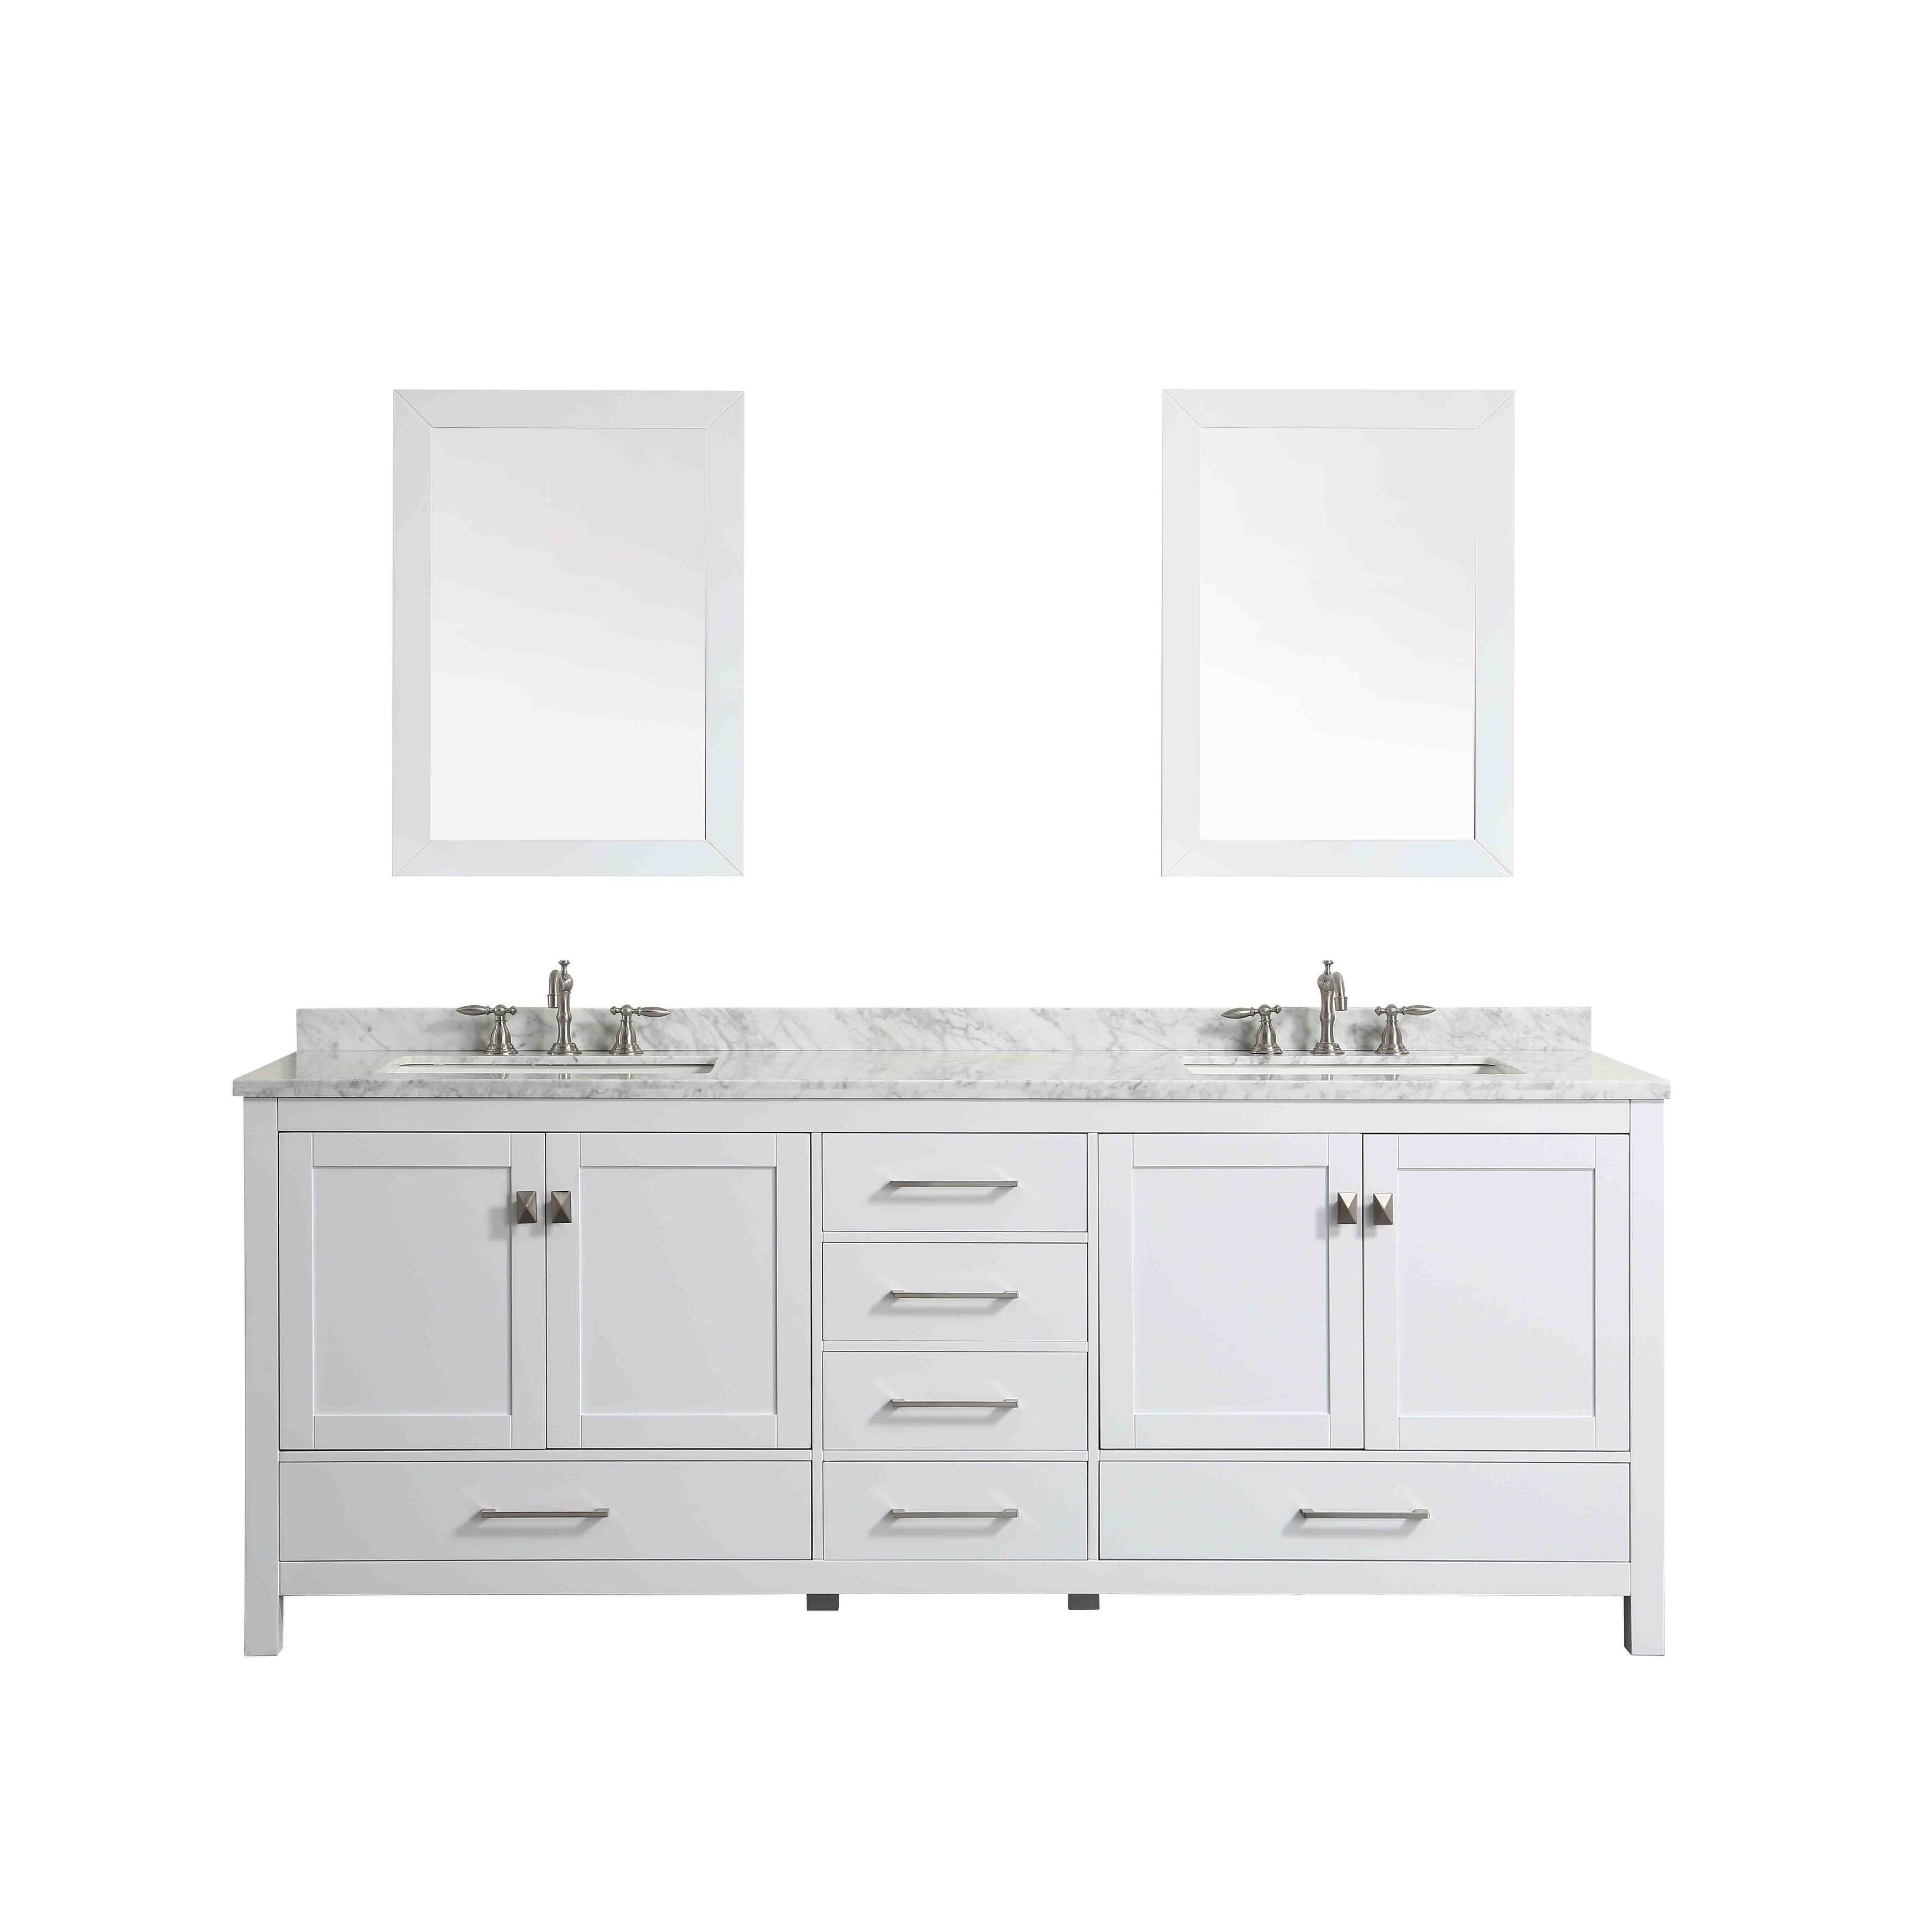 84 inch vanity liquid soap dispenser holder